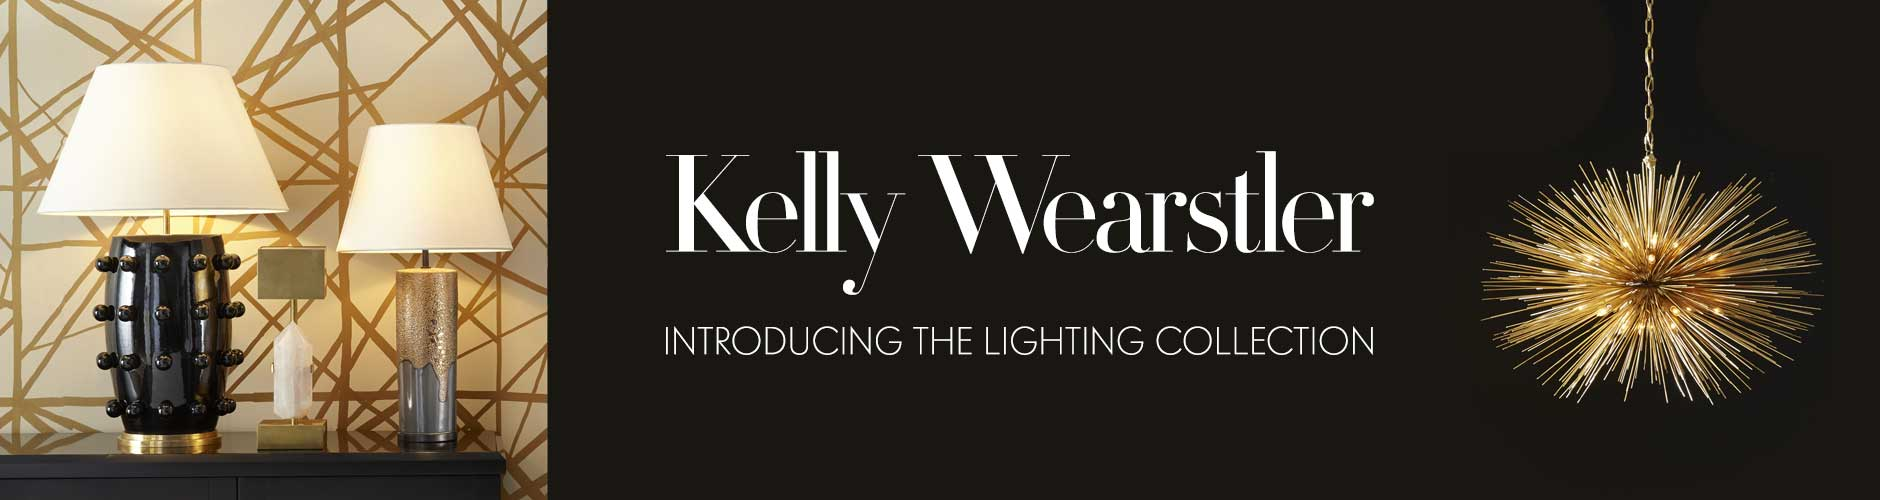 Kelly Wearstler: Lighting Collection